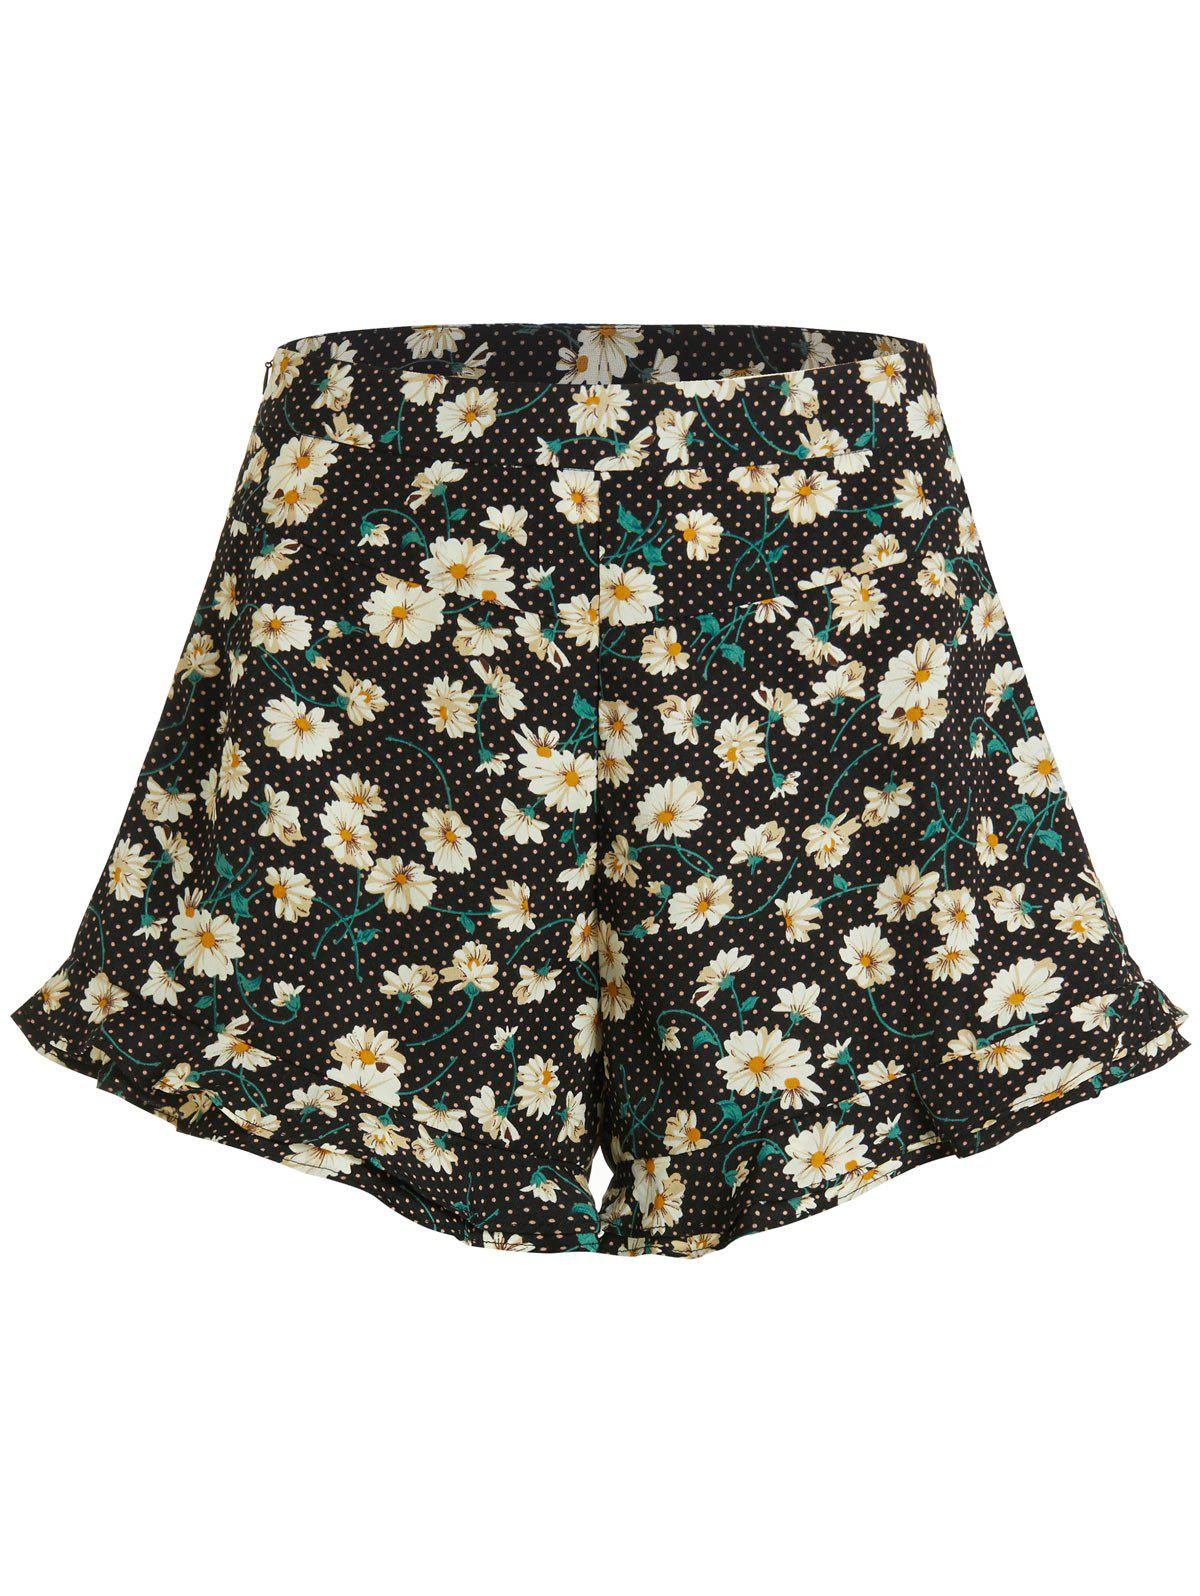 Polka Dot Daisy Print High Waisted Shorts